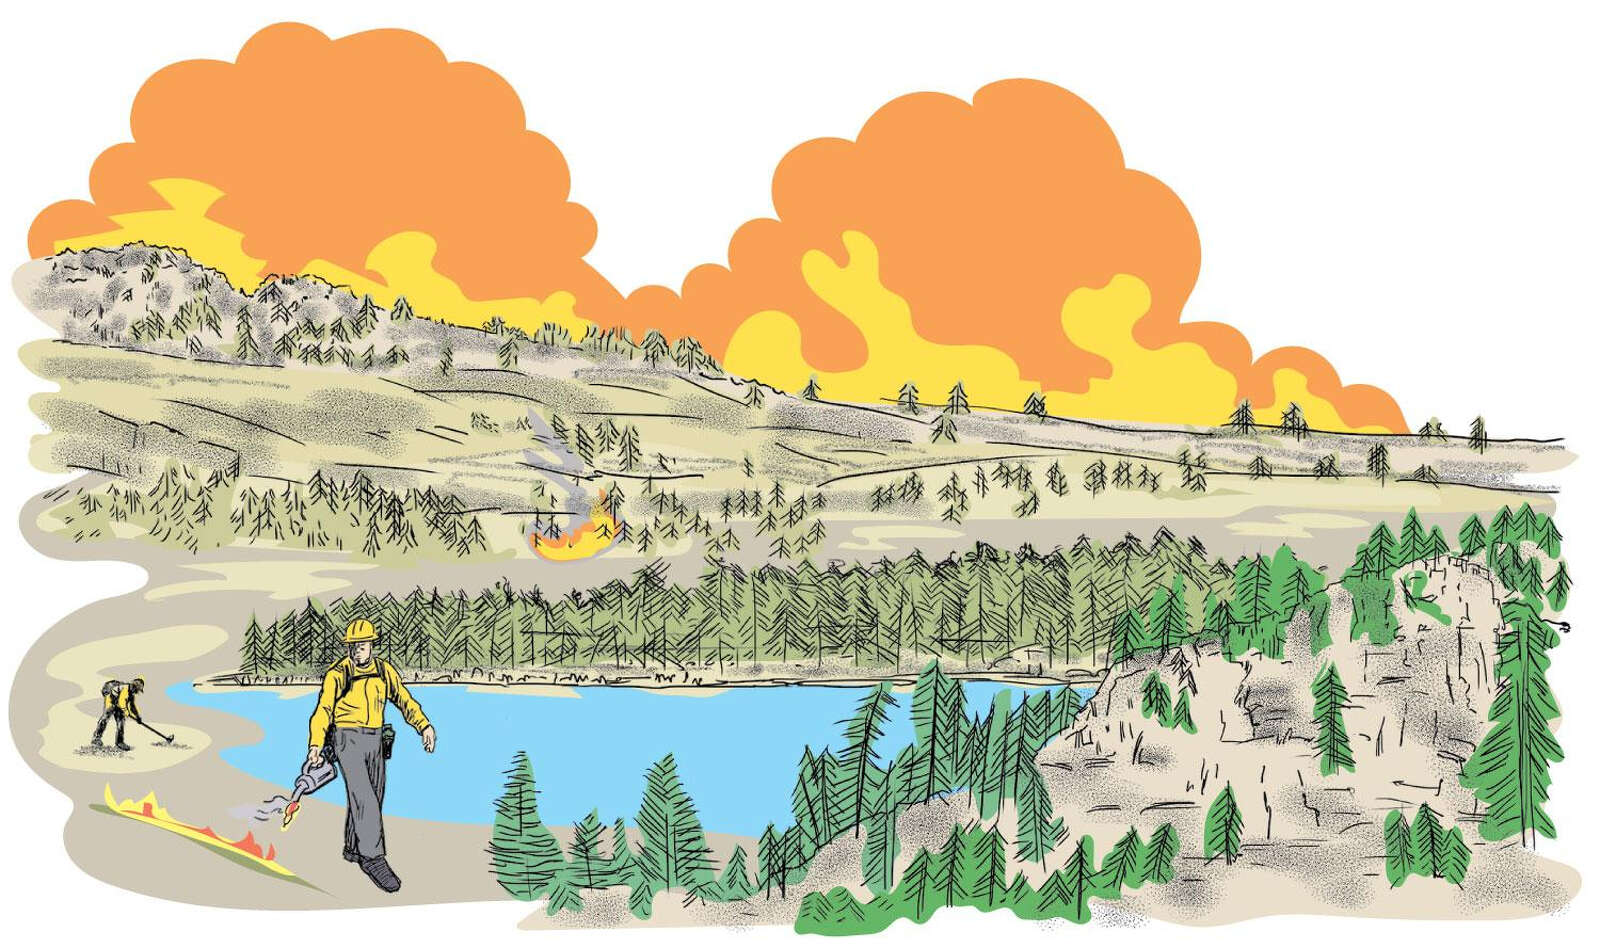 Firefighter tactics used to control flames in rugged terrain, ski resorts and residential areas